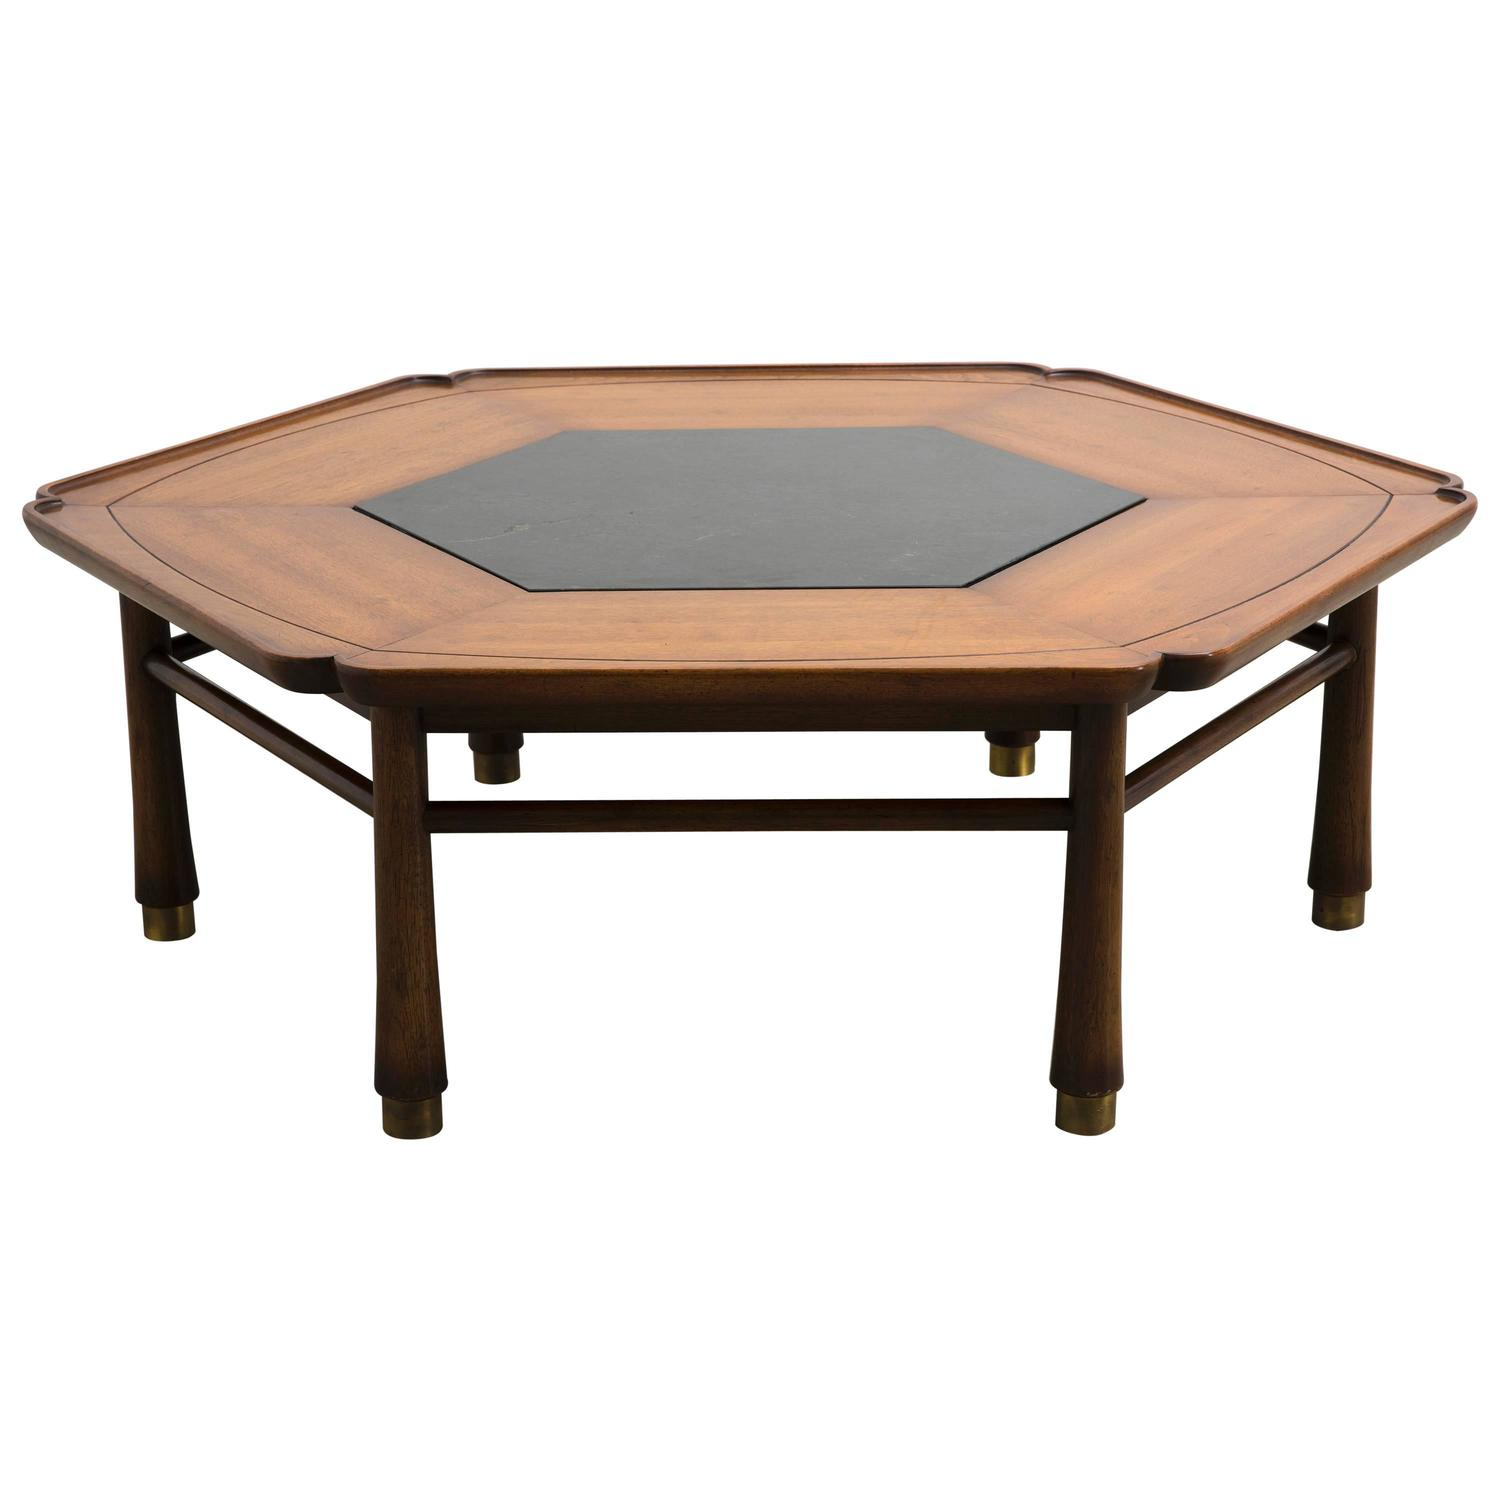 Hexagonal Coffee Table By Drexel Heritage Circa 1968 At 1stdibs